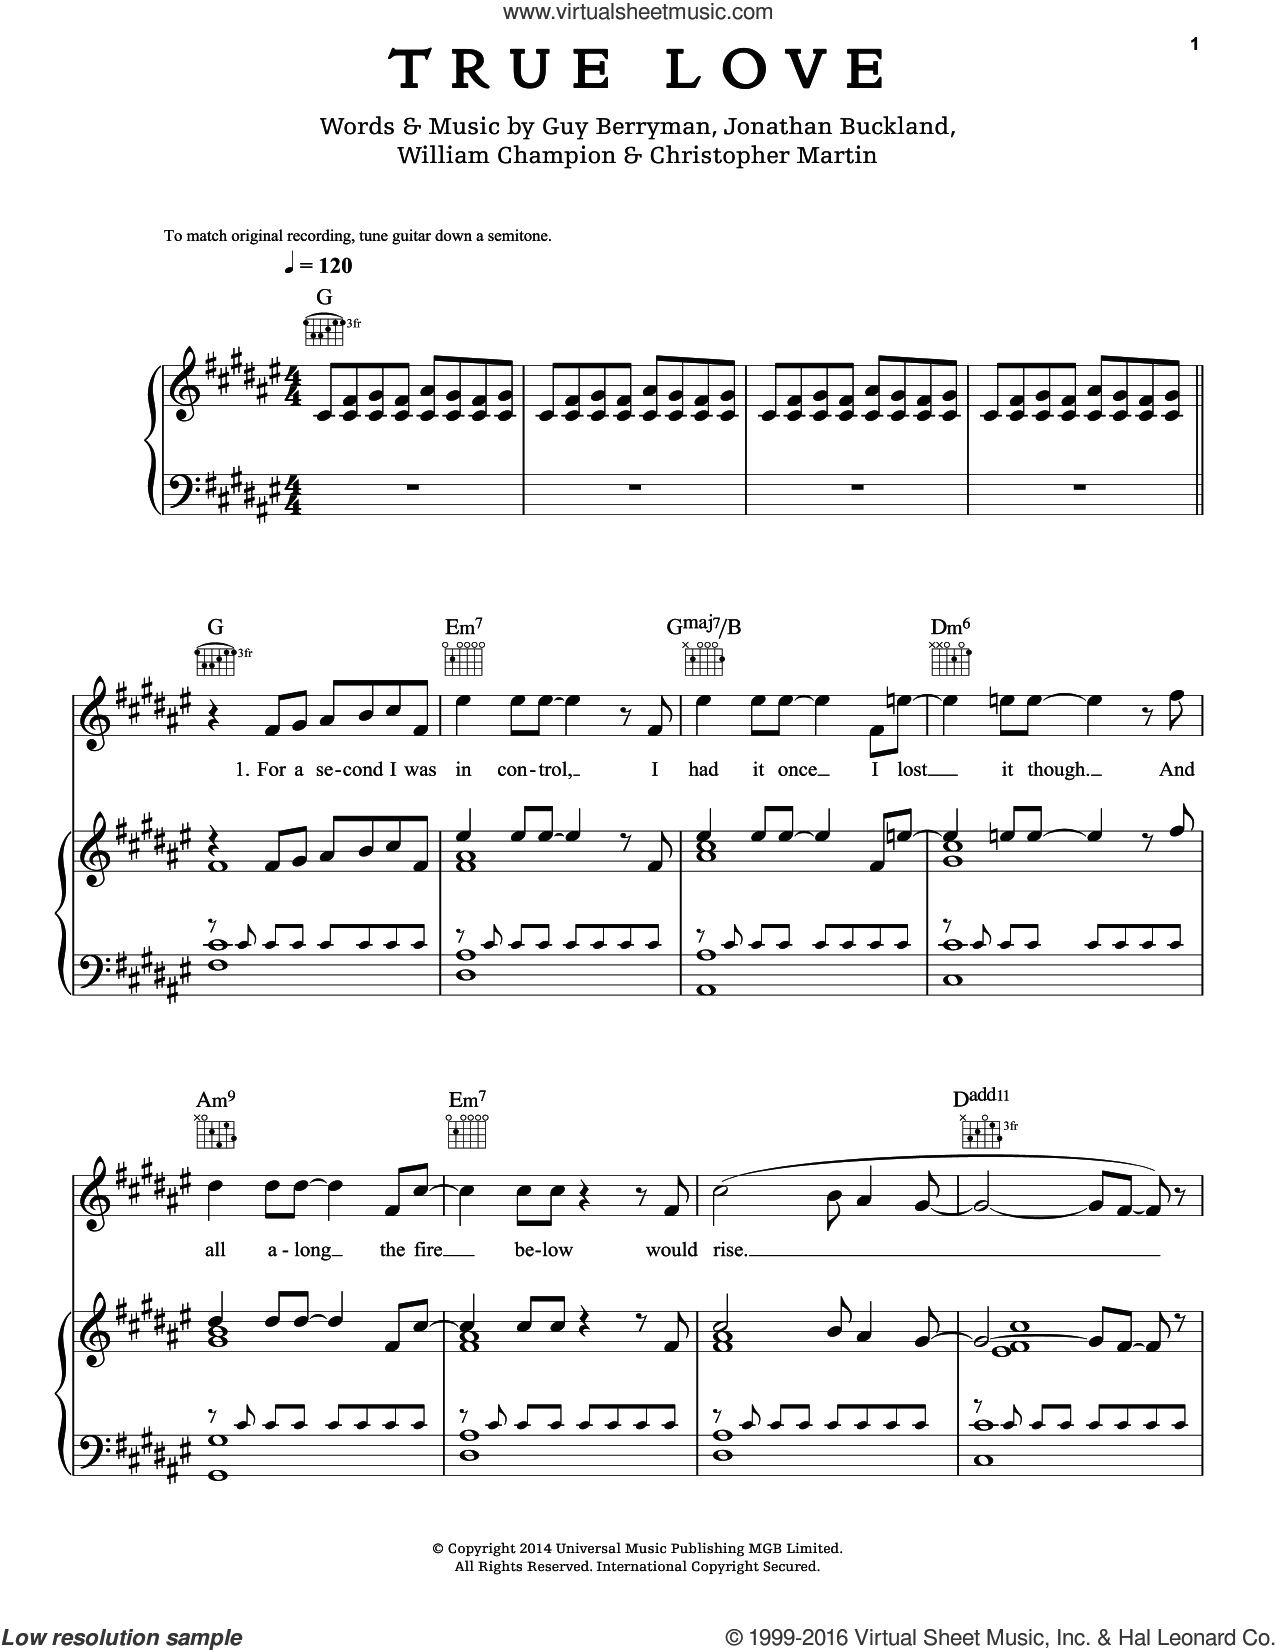 True Love sheet music for voice, piano or guitar by Chris Martin, Coldplay, Guy Berryman, Jon Buckland and Will Champion, intermediate skill level